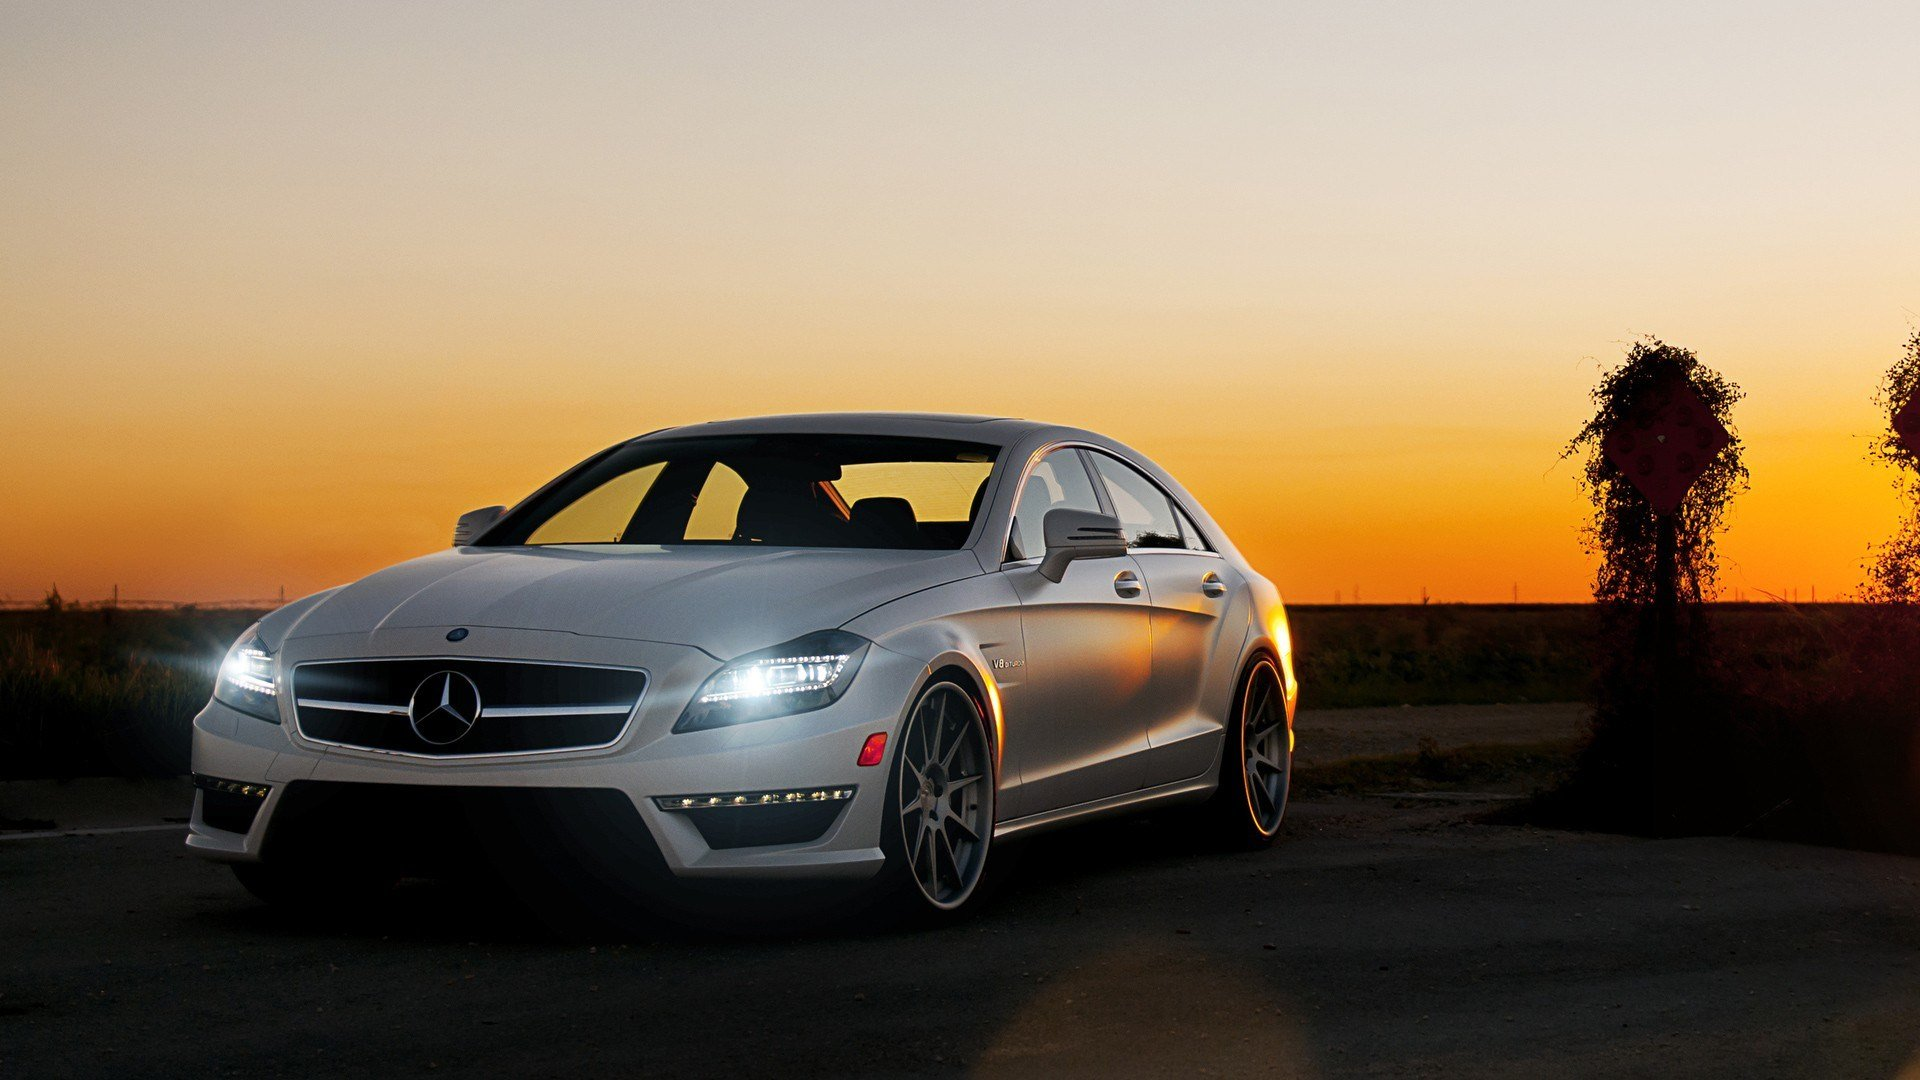 Latest Mercedes Benz Cls63 Wallpapers Hd Wallpapers Id 11059 Free Download